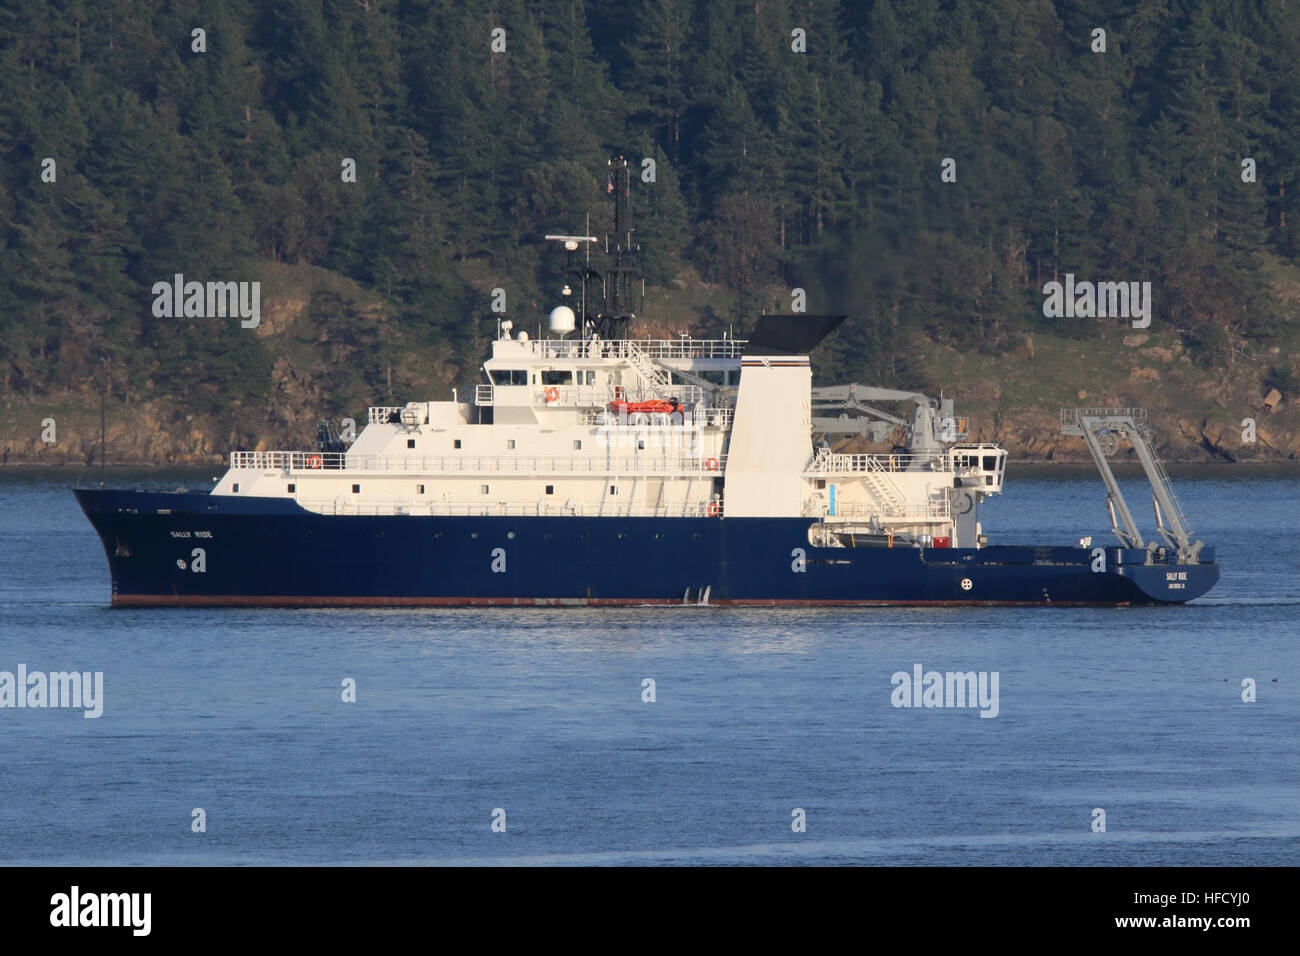 160225-N-EW716-001  PADILLA BAY, Wash. – The Research Vessel R/V Sally Ride (AGOR 28) successfully completed Acceptance - Stock Image